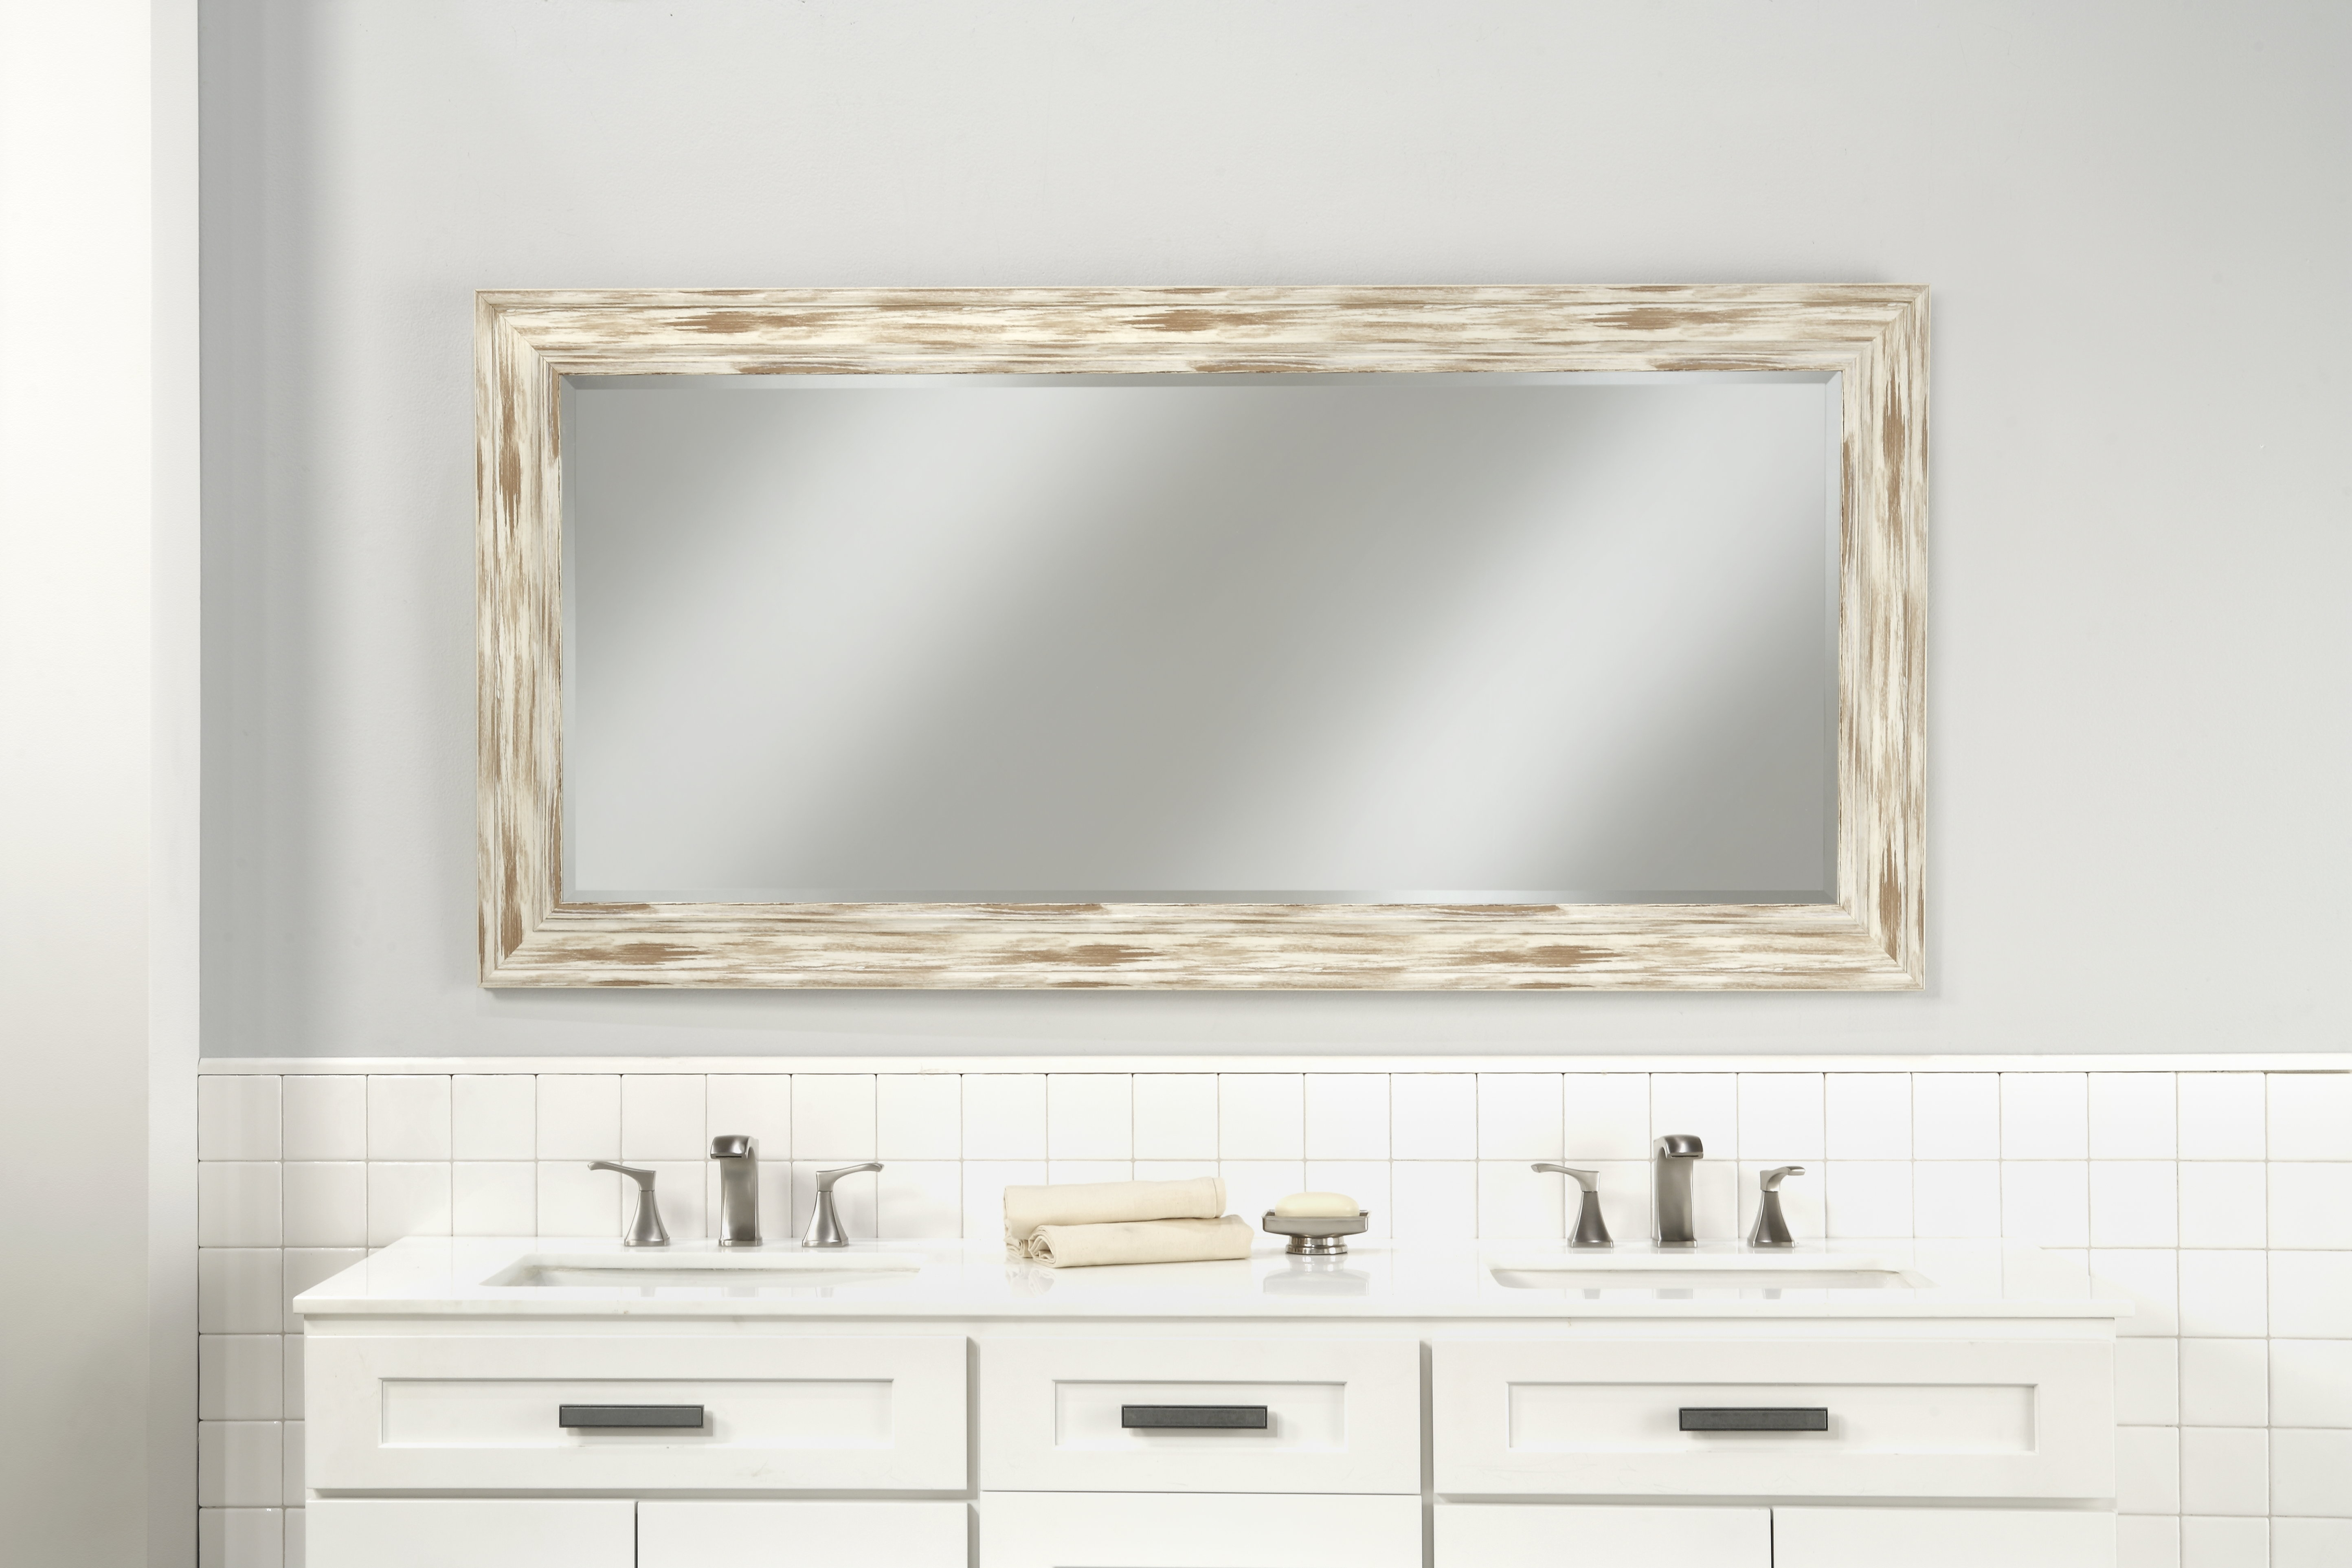 Farmhouse & Rustic Mirrors   Birch Lane In Polen Traditional Wall Mirrors (View 17 of 20)